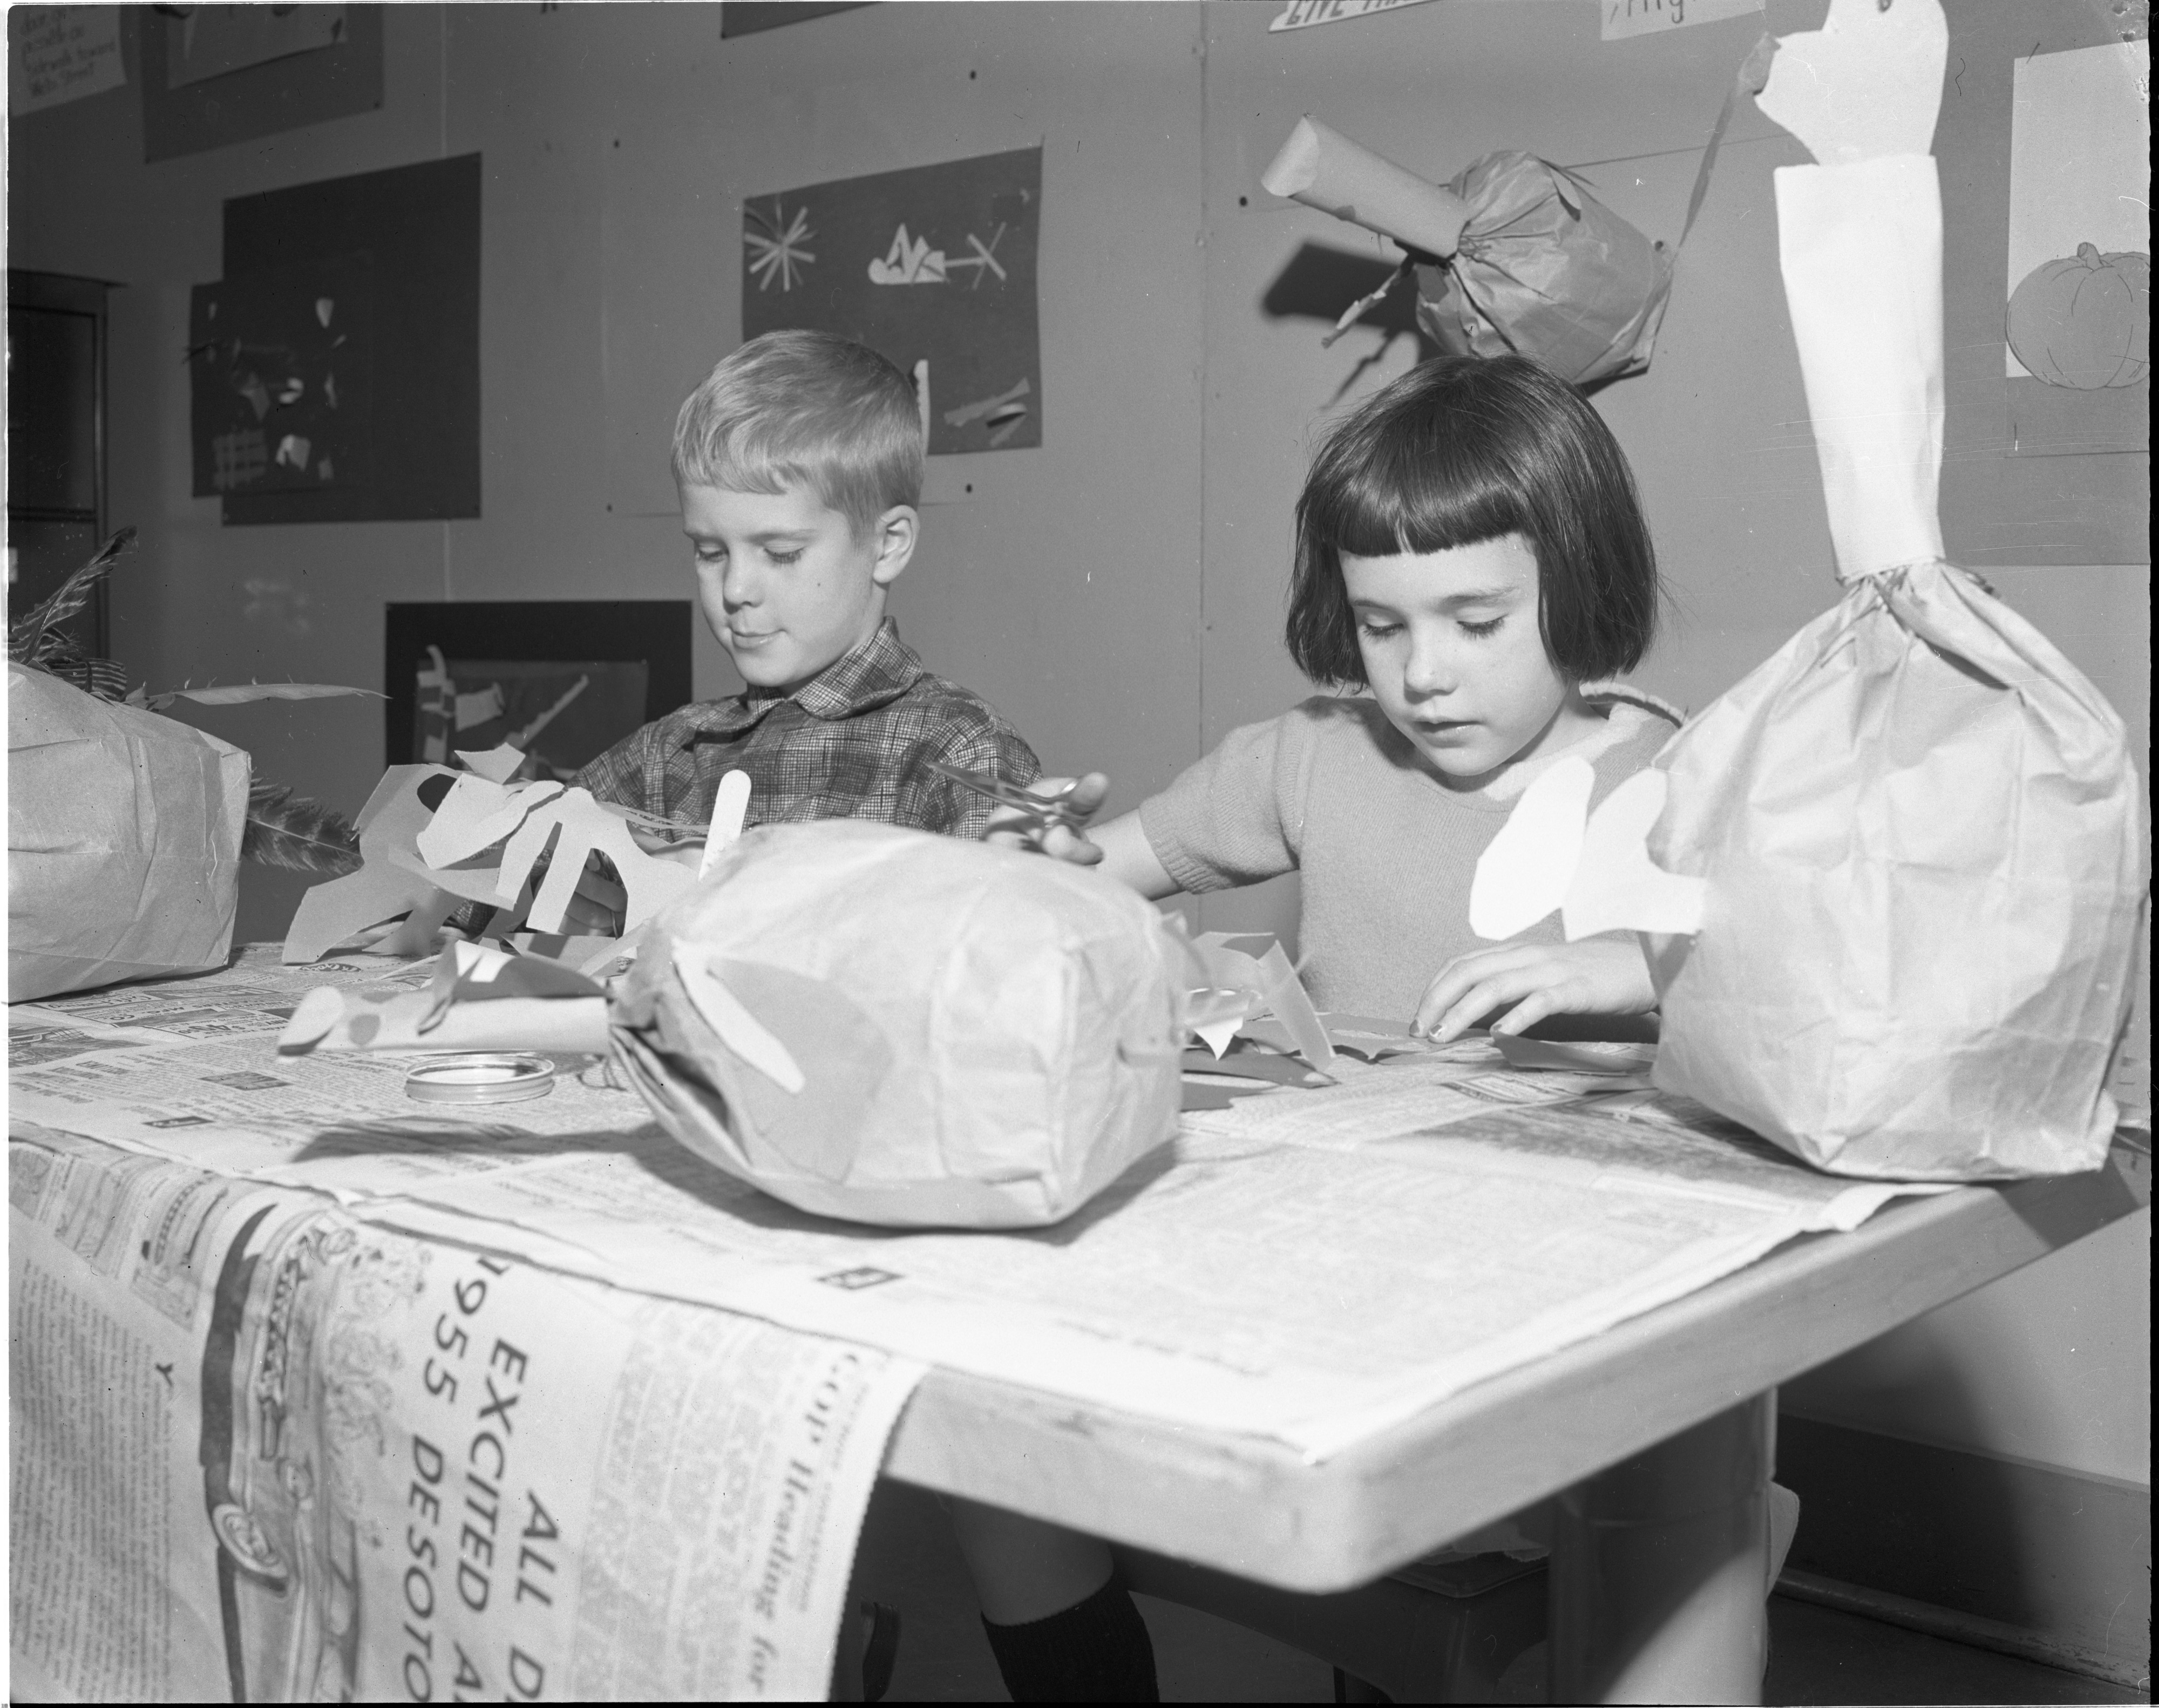 Burns Park School Students Make Paper Turkeys For Thanksgiving, November 1954 image